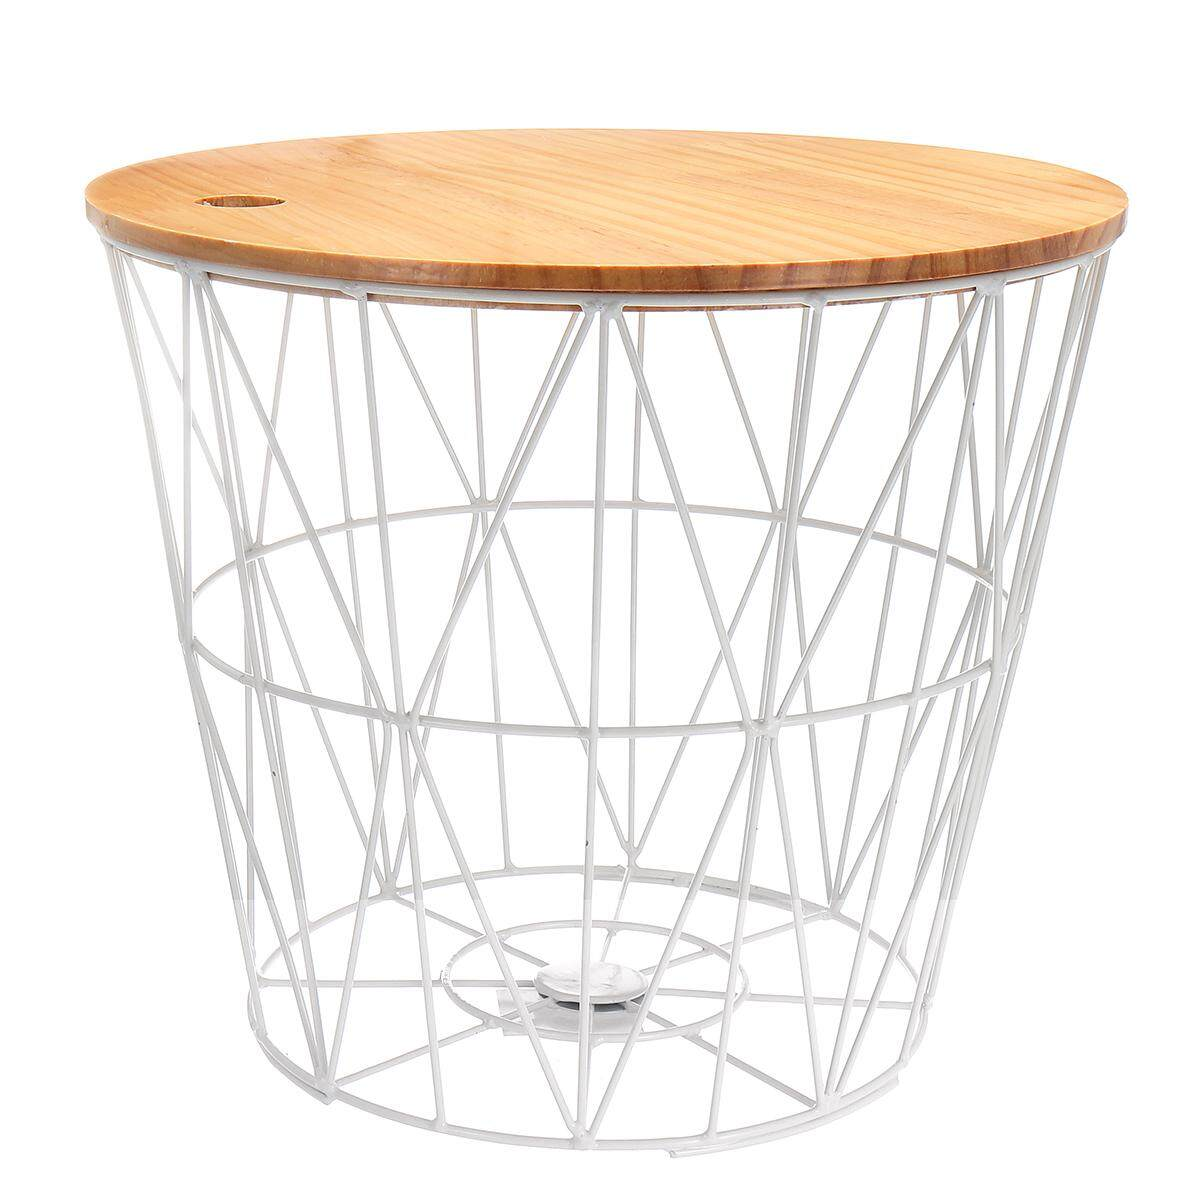 White metal wire basket wooden top side table storage loft living home furniture [White Large (with cover)]